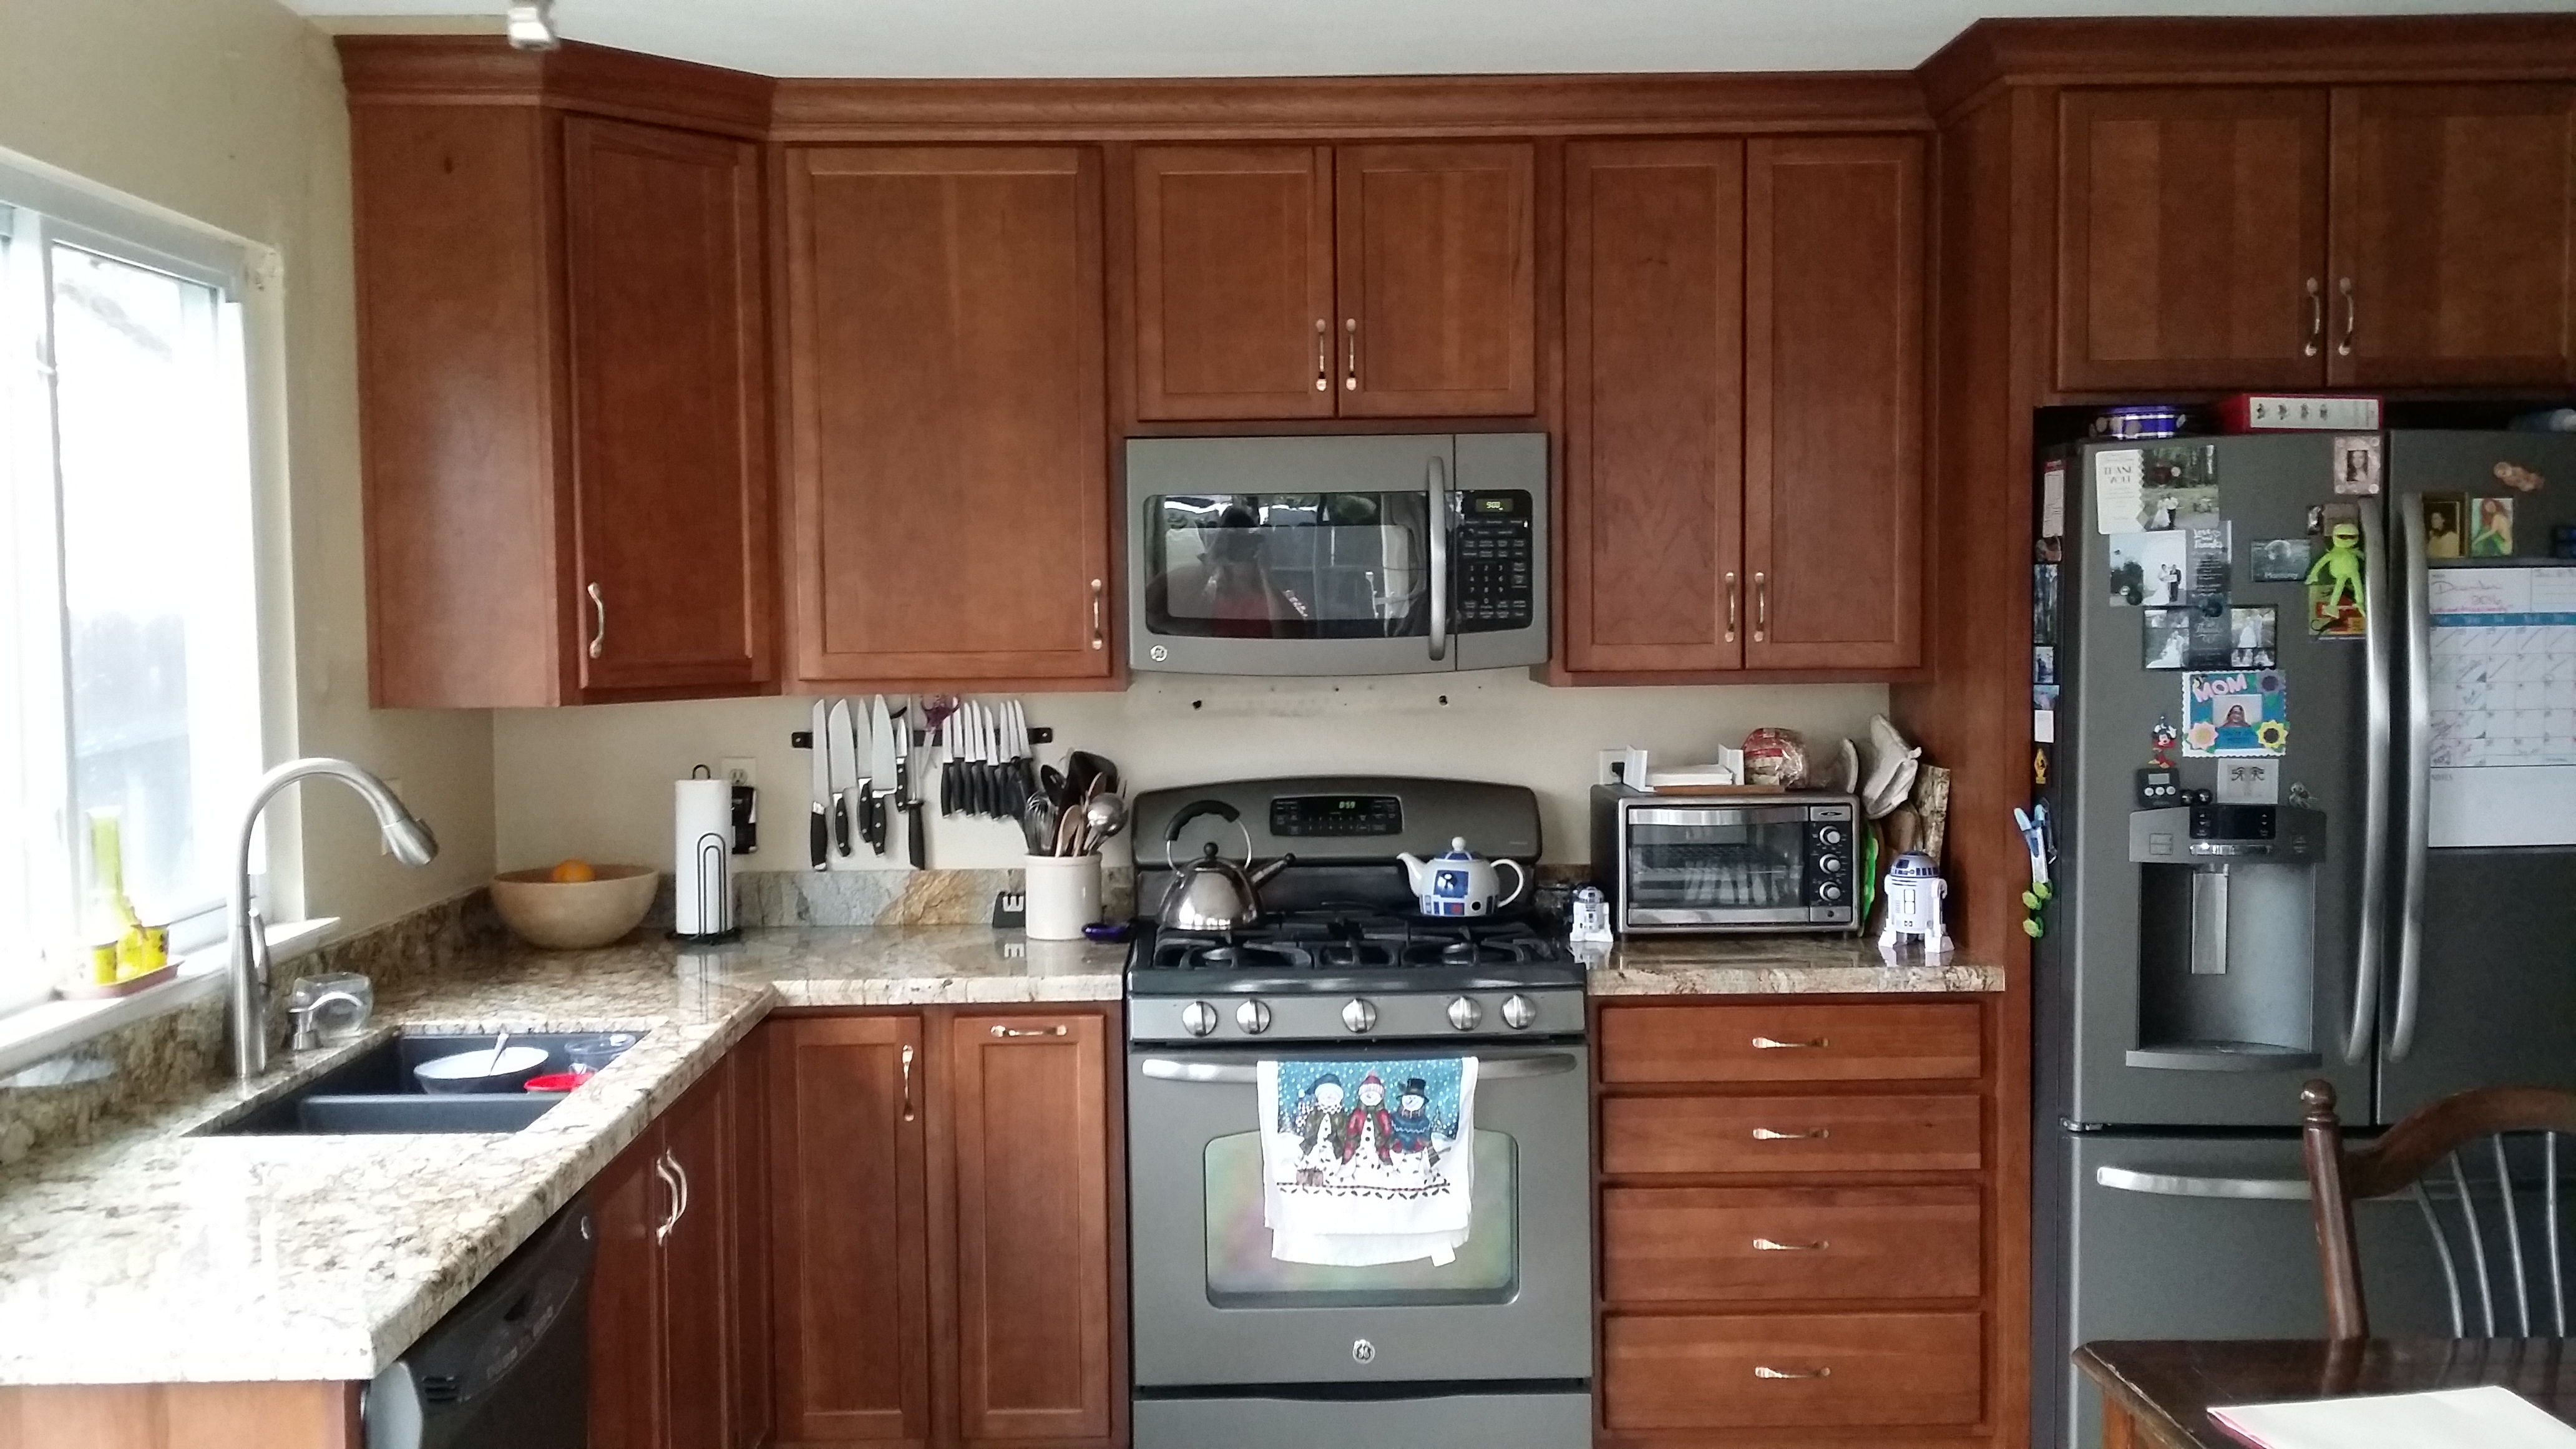 Kitchen sink on white counter with stained cabinets